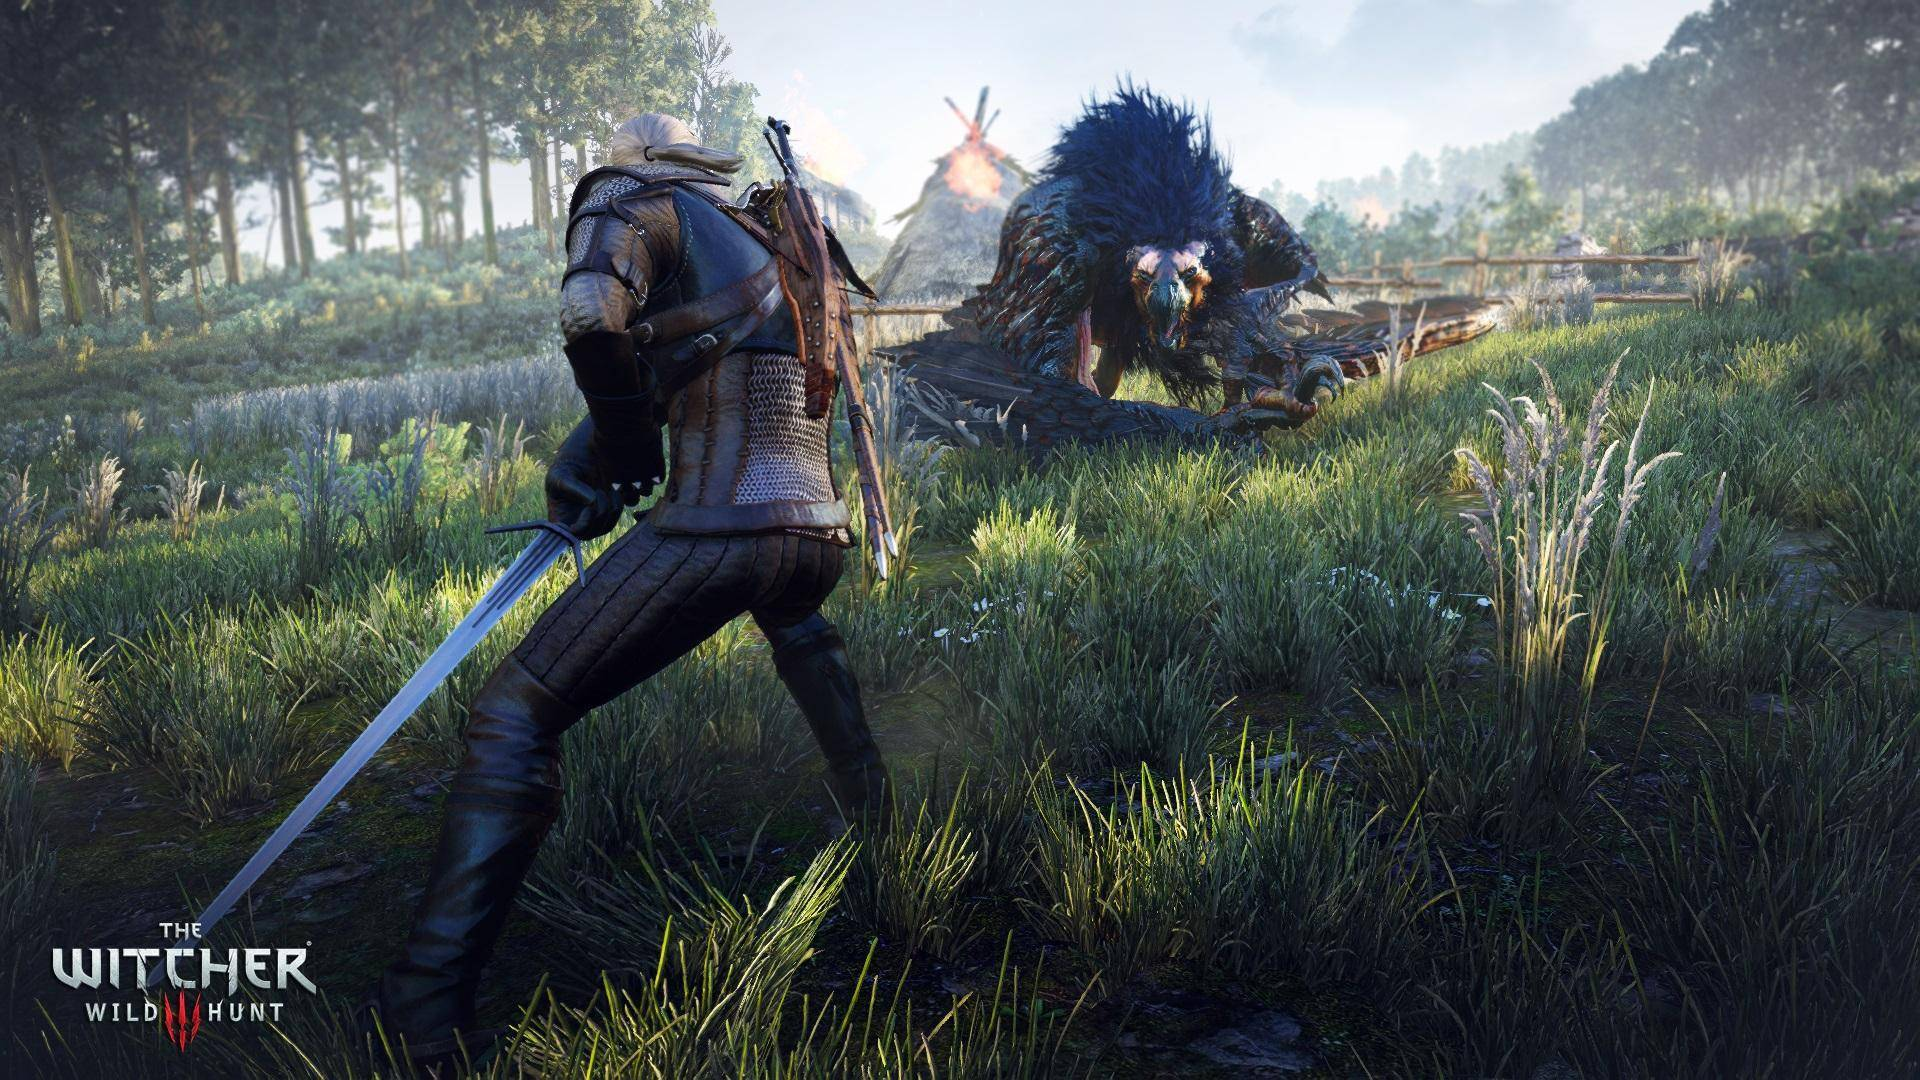 Ver el tráiler de The Witcher 3 Wild Hunt